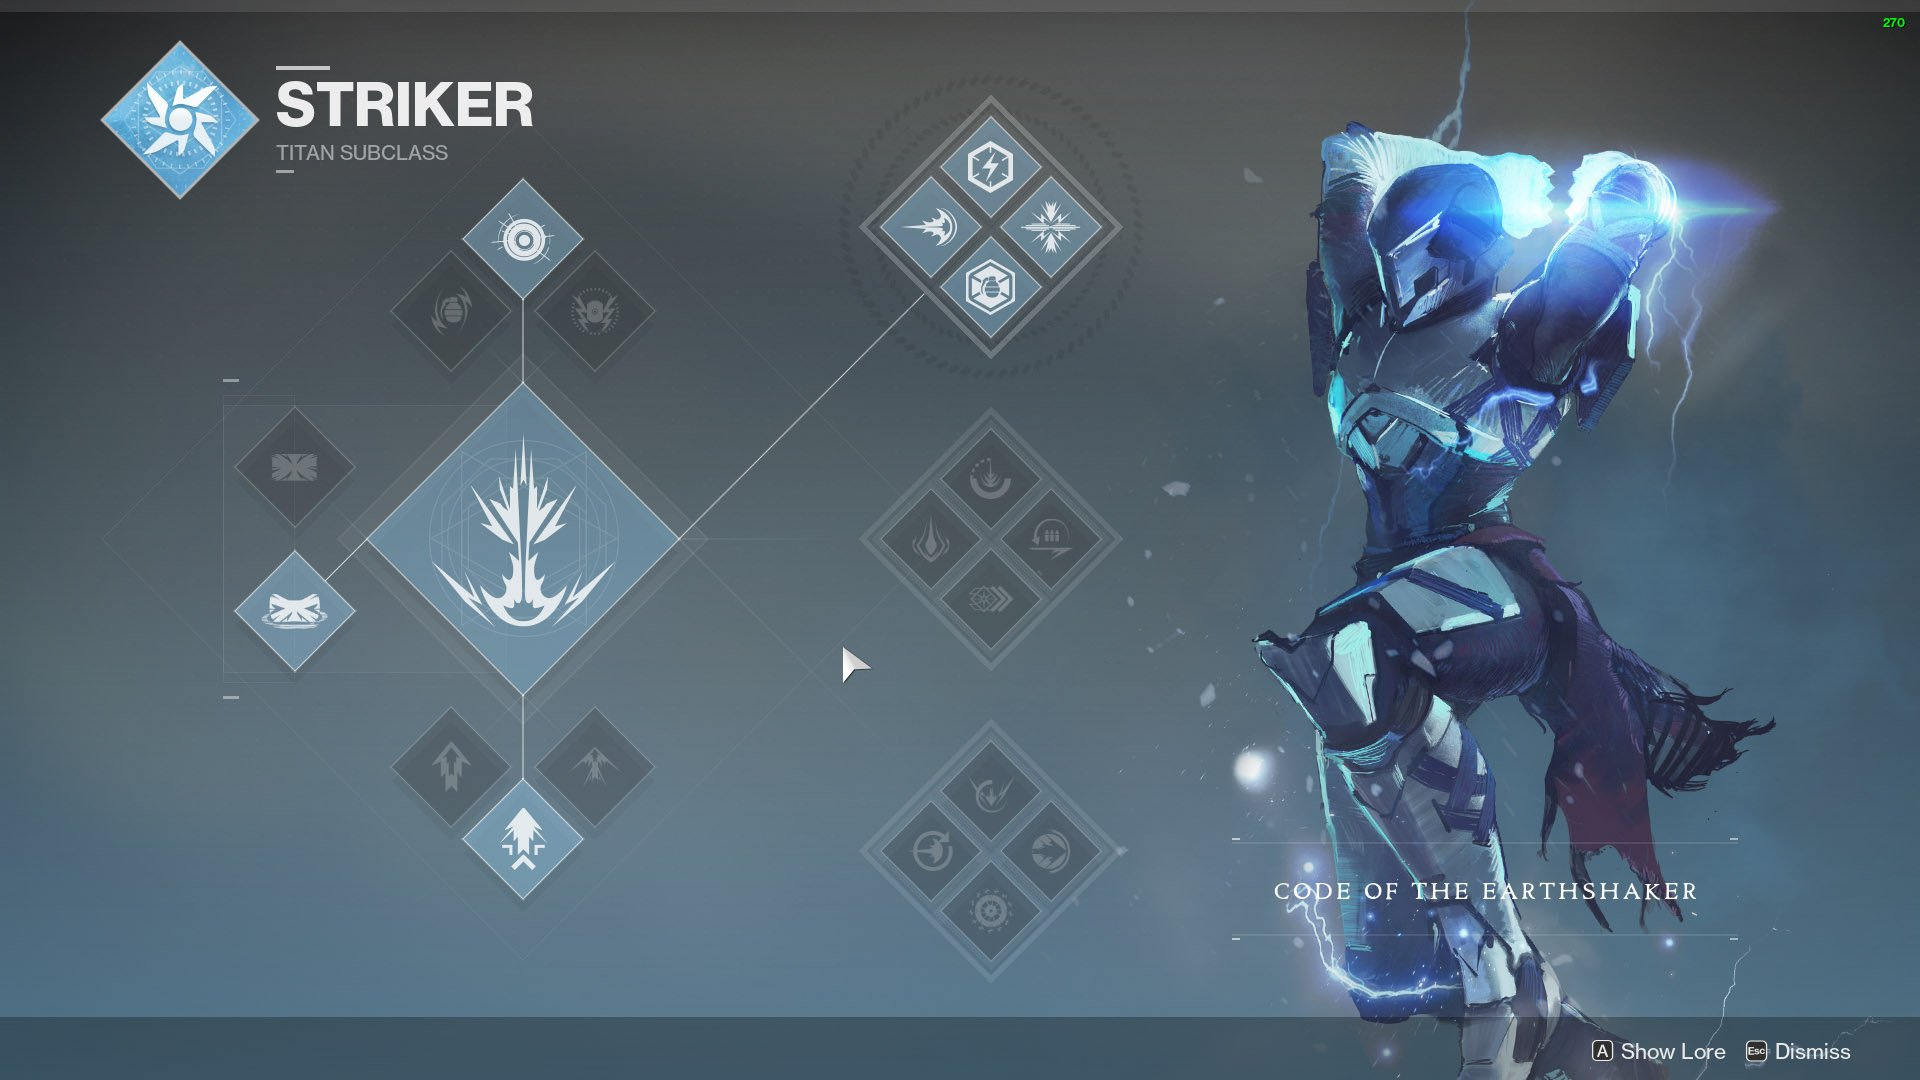 destiny 2 titan striker